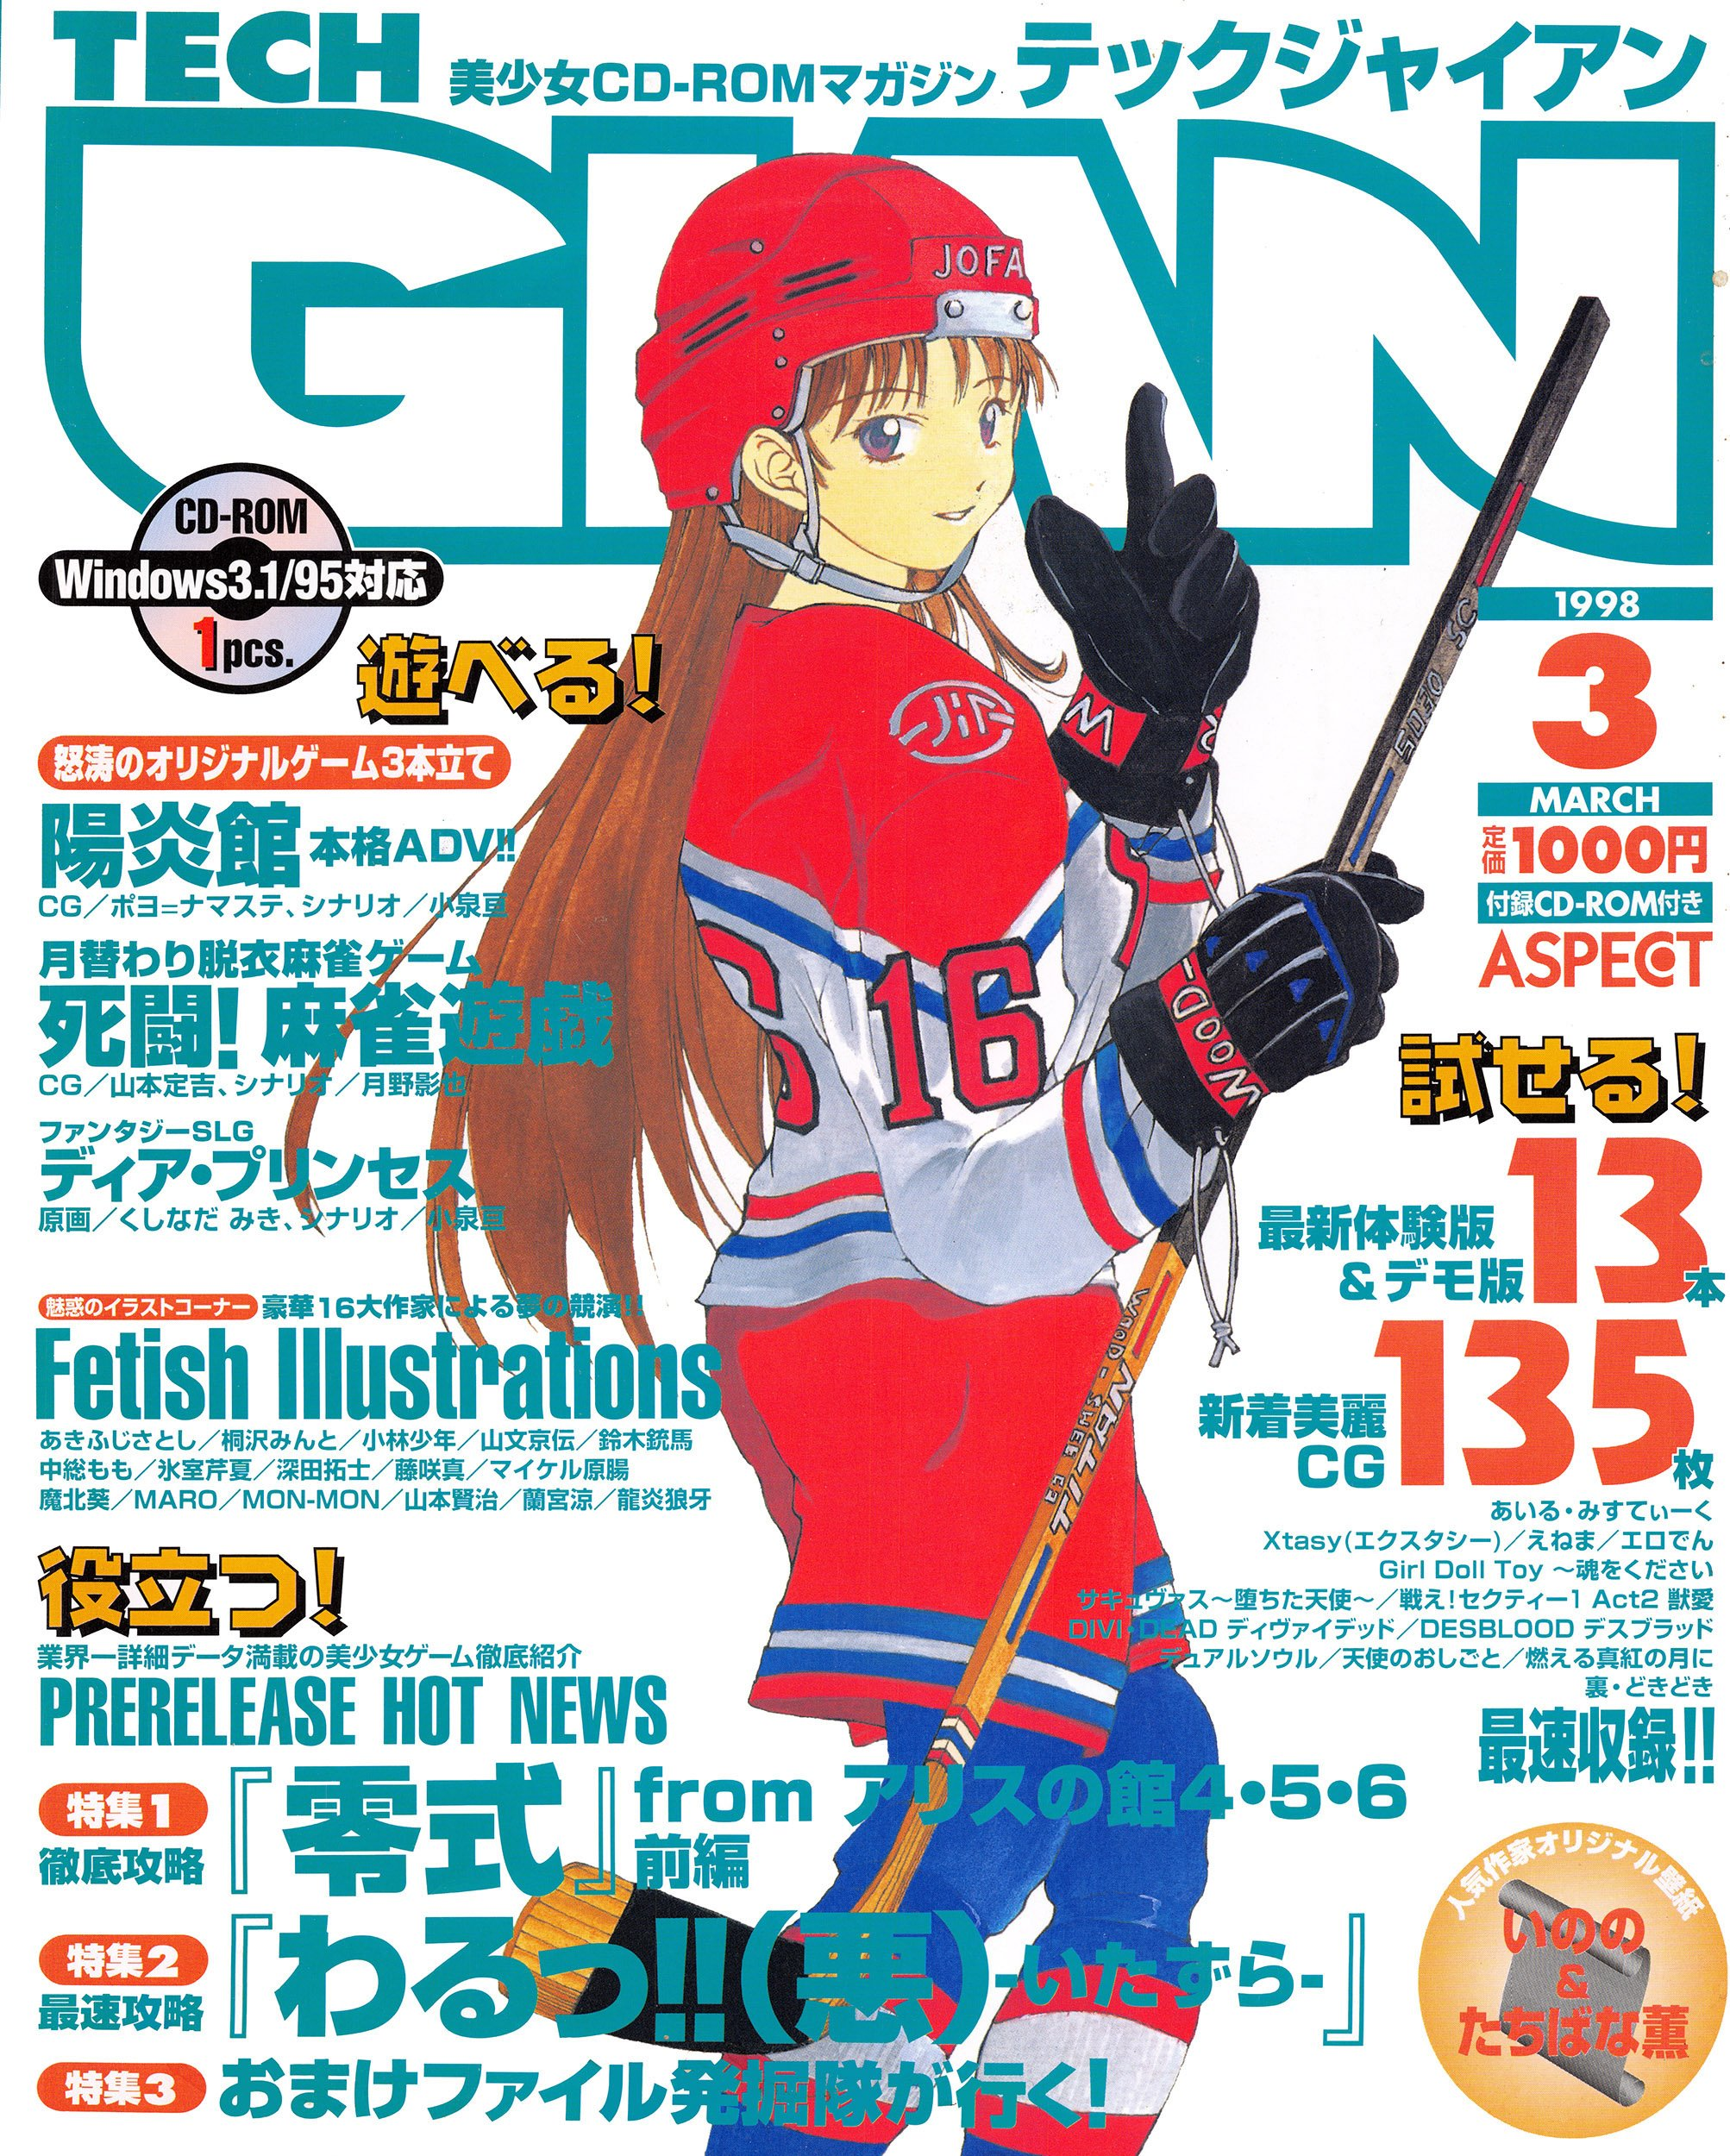 Tech Gian Issue 017 (March 1998)